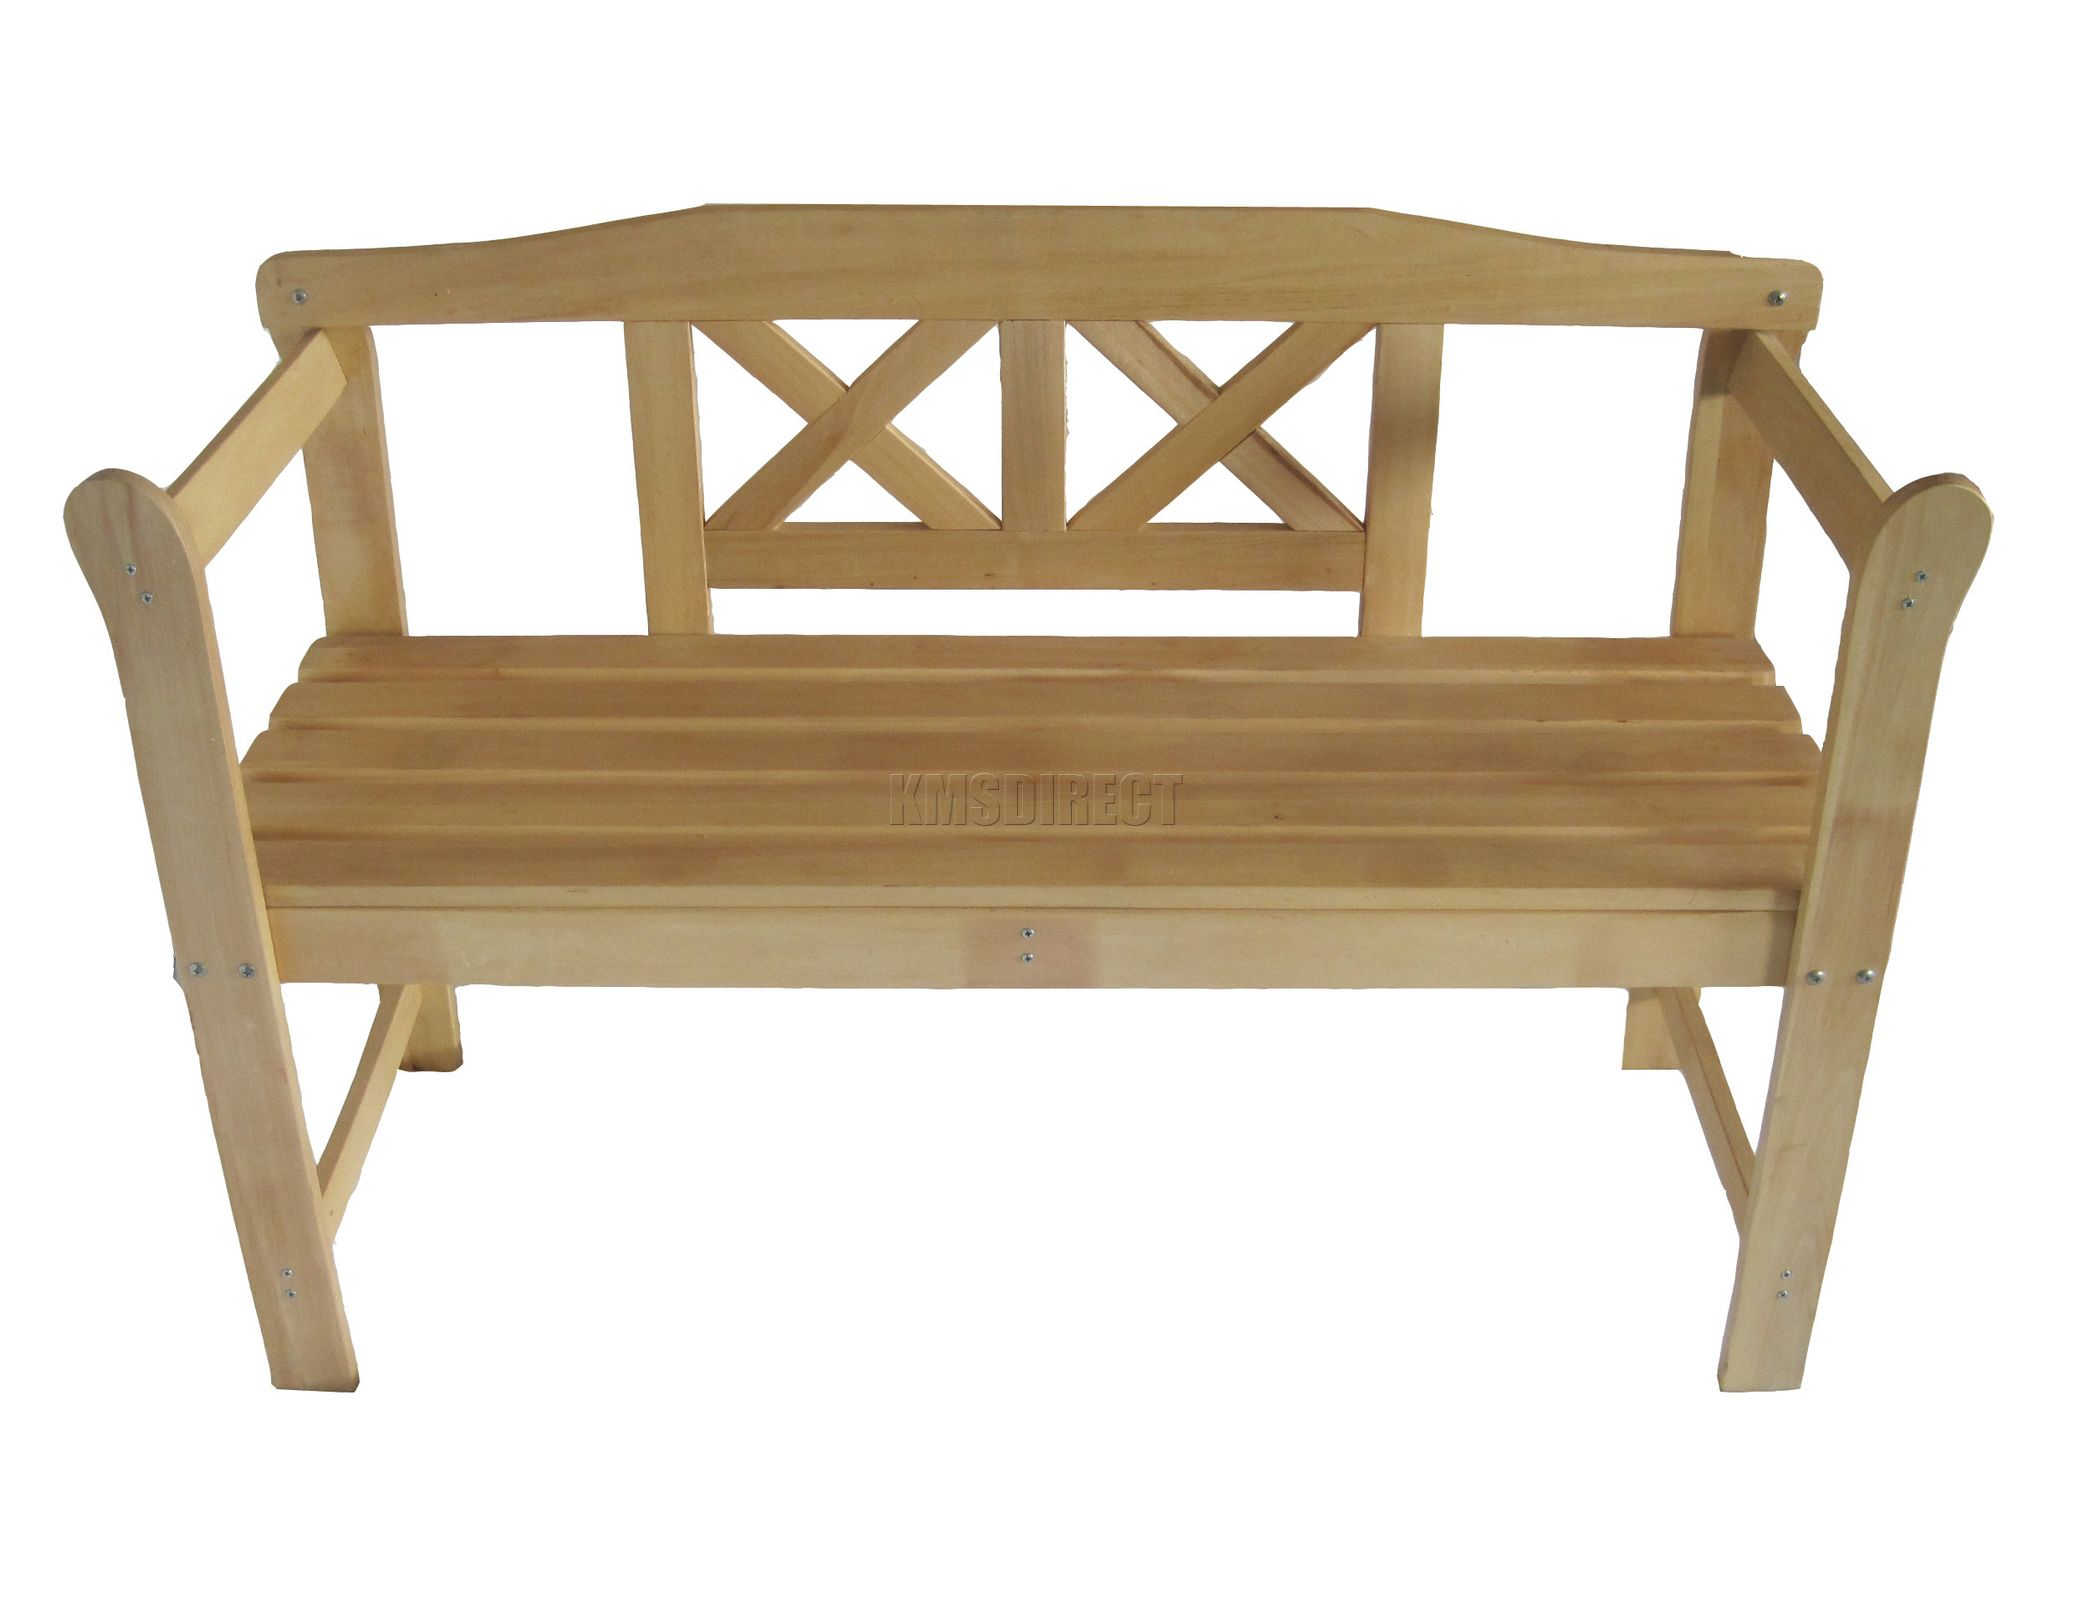 Outdoor Home Wooden 2 Seat Seater Garden Bench Furniture Patio Park Wood 031